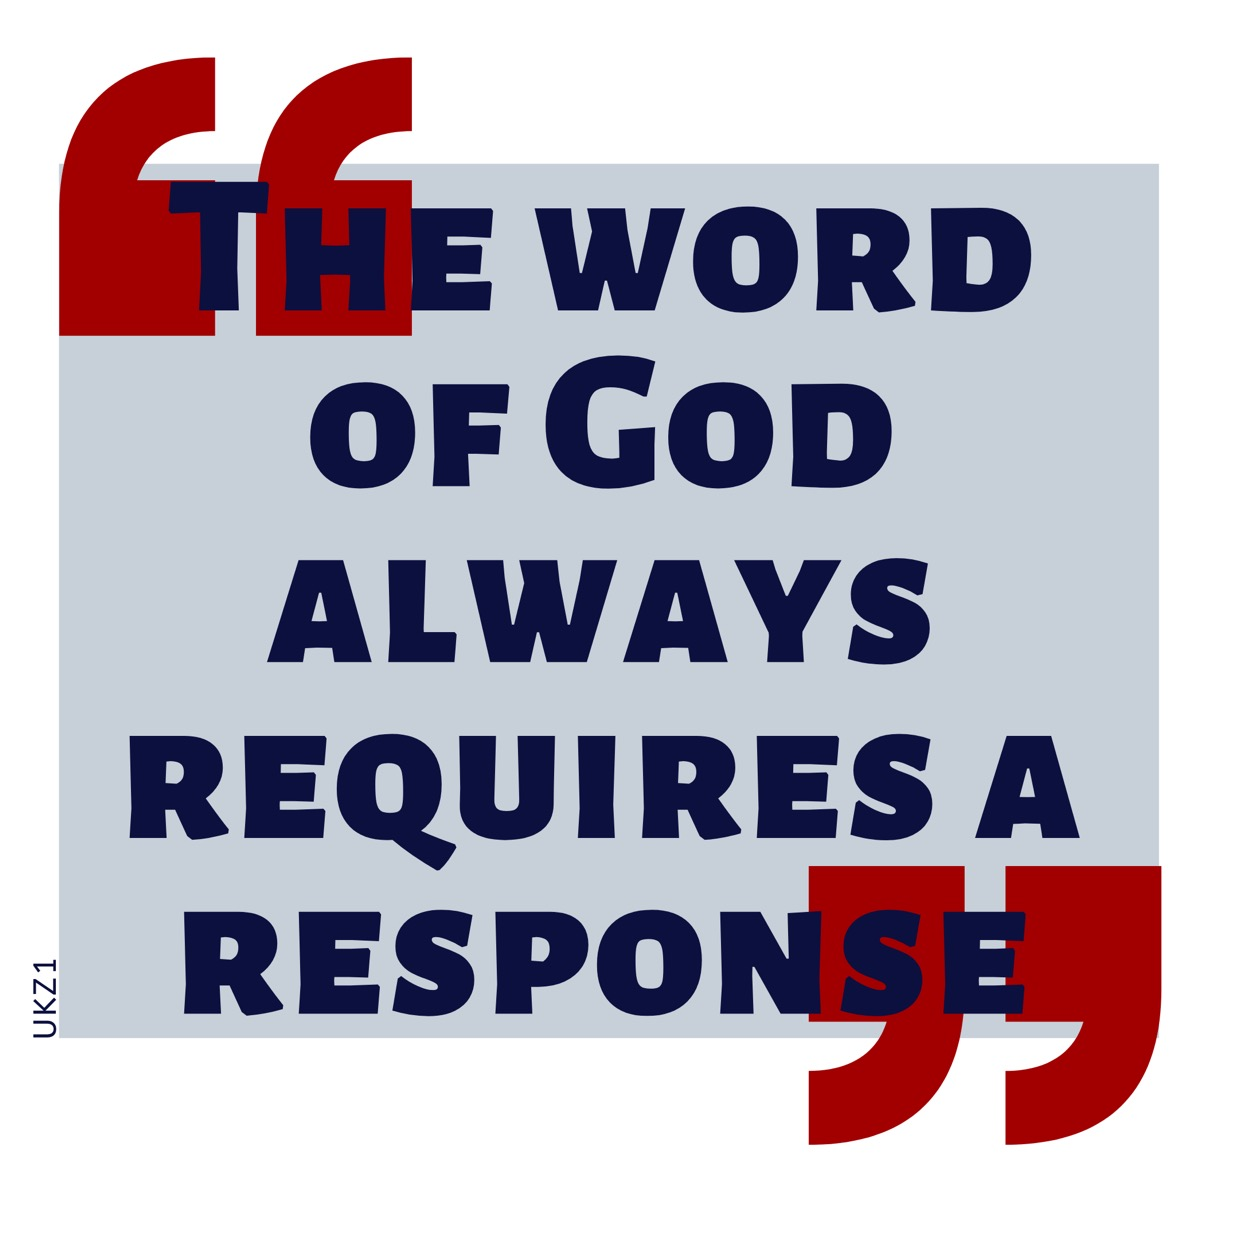 'The Word of God always